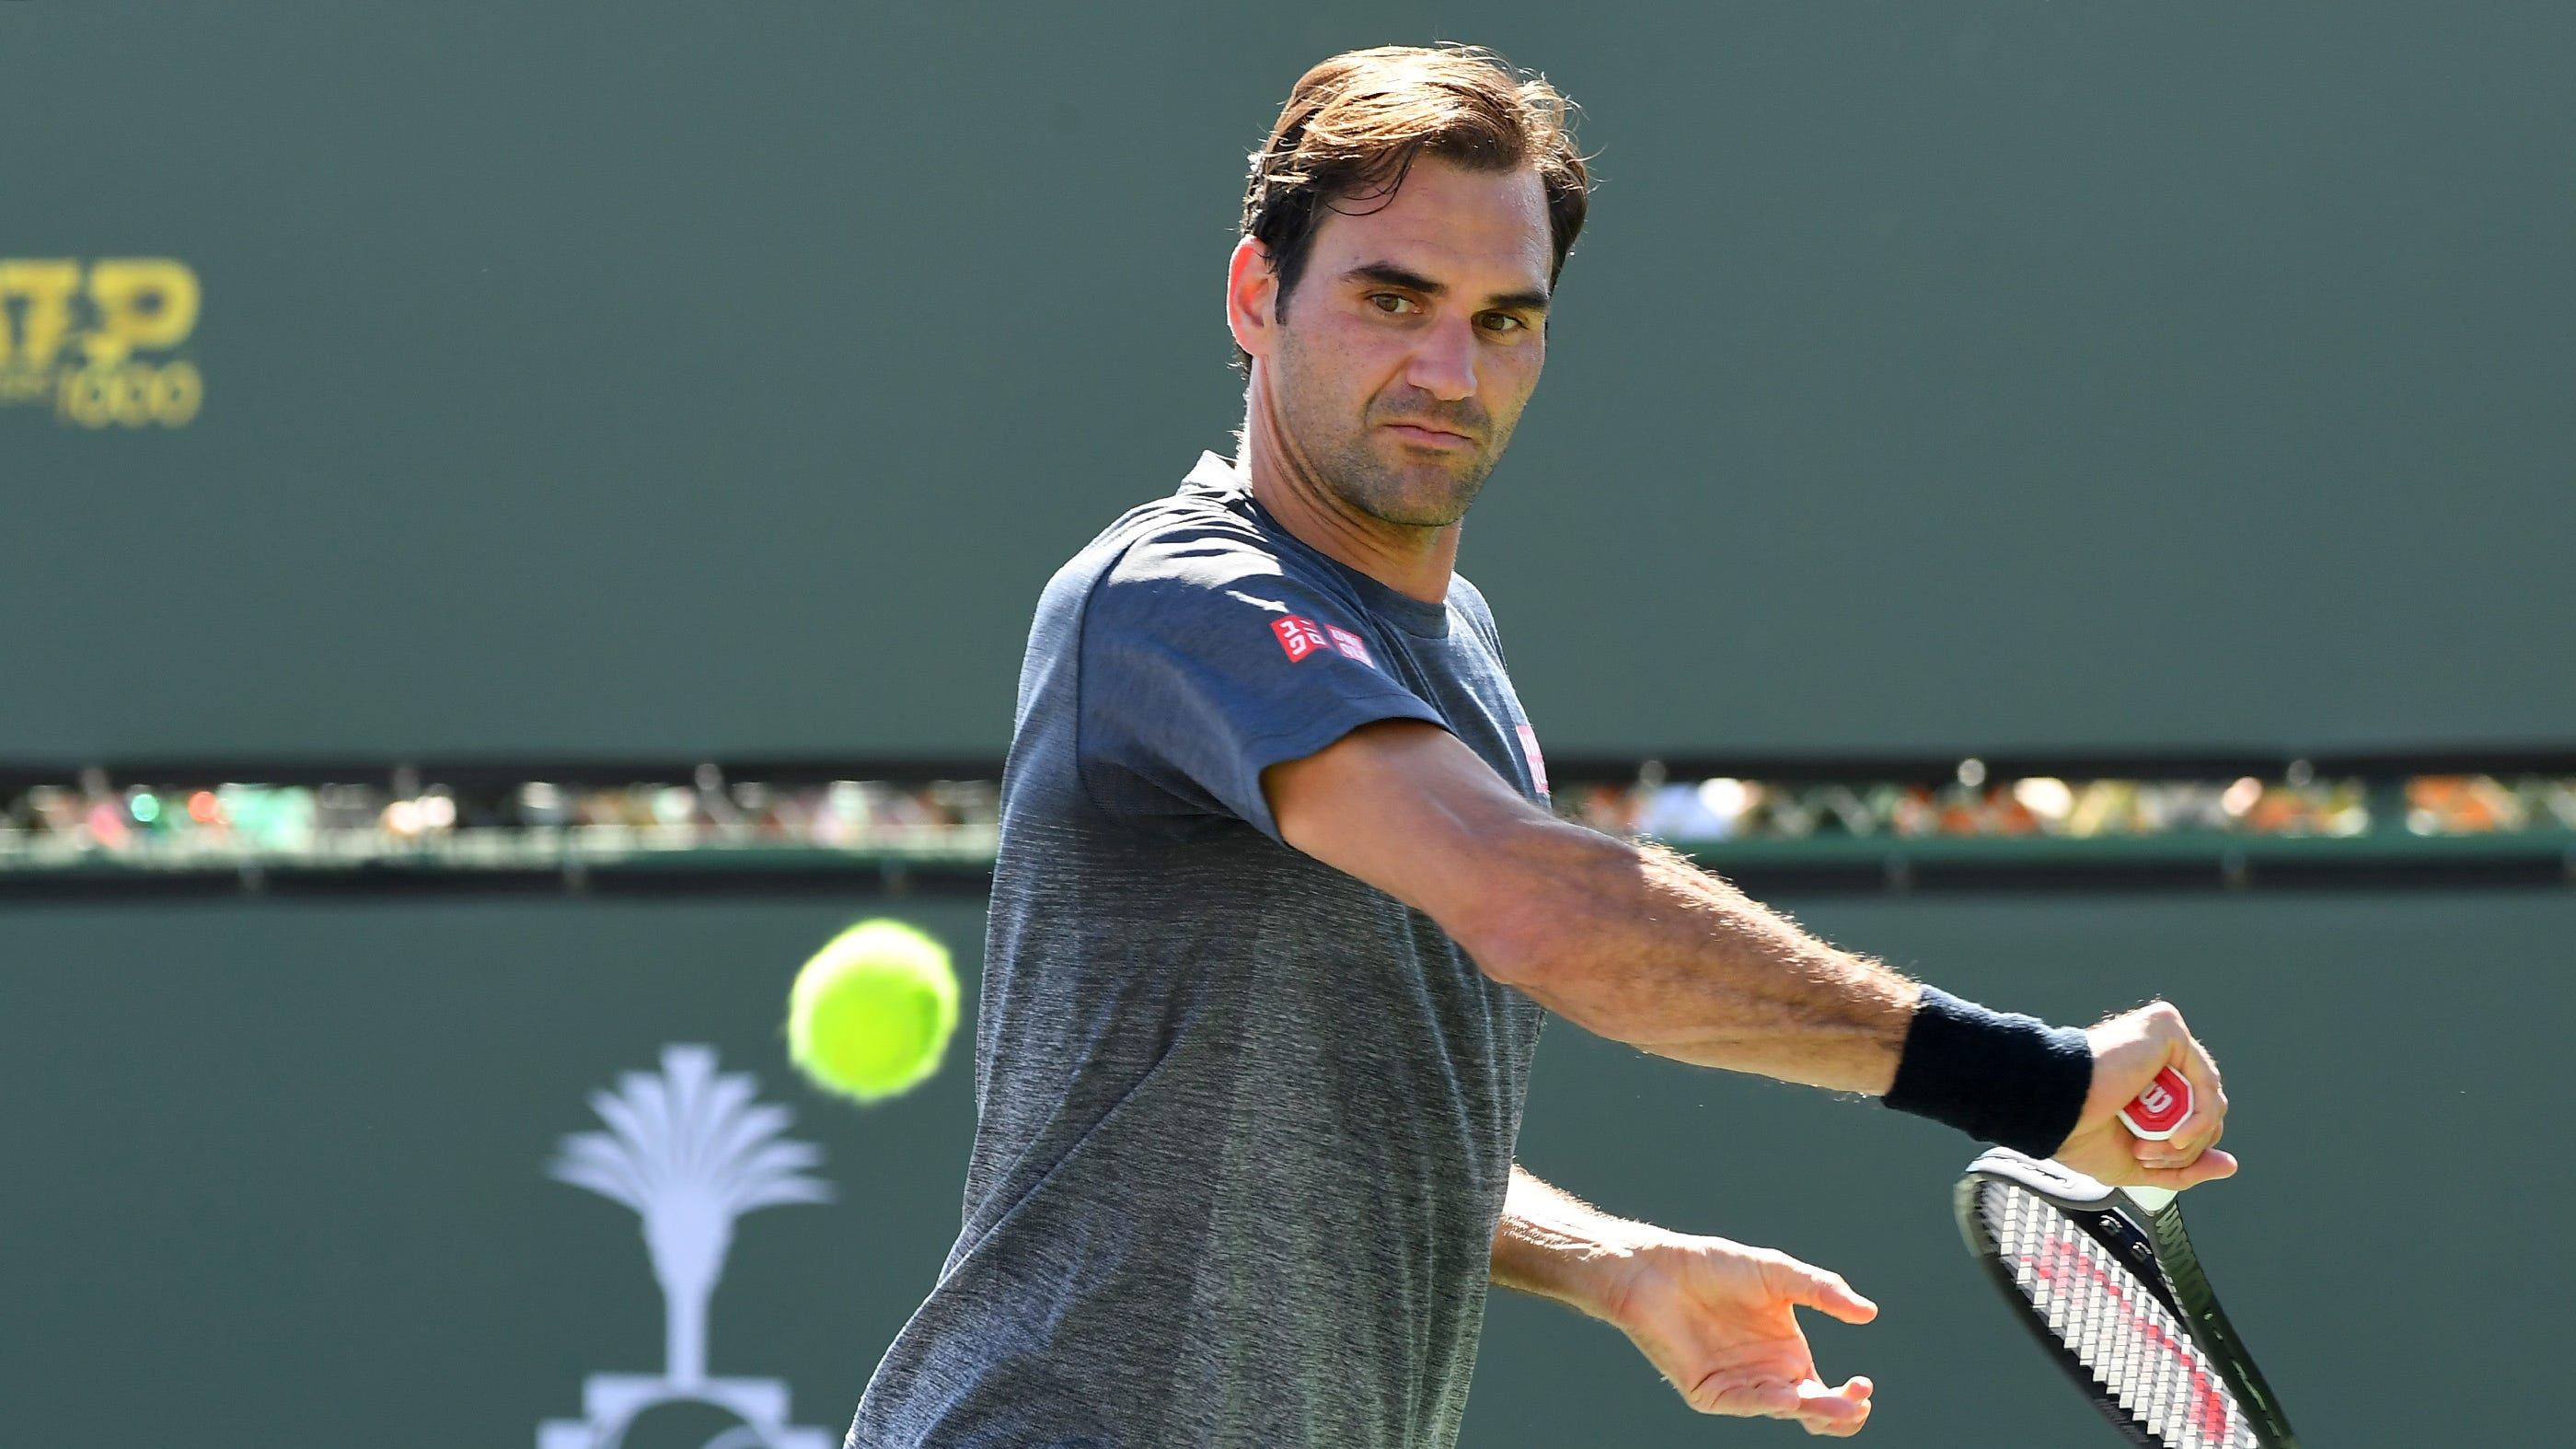 Roger Federer Pinterest: Roger Federer Riffs On Tennis Triumphs, Big Rivalries